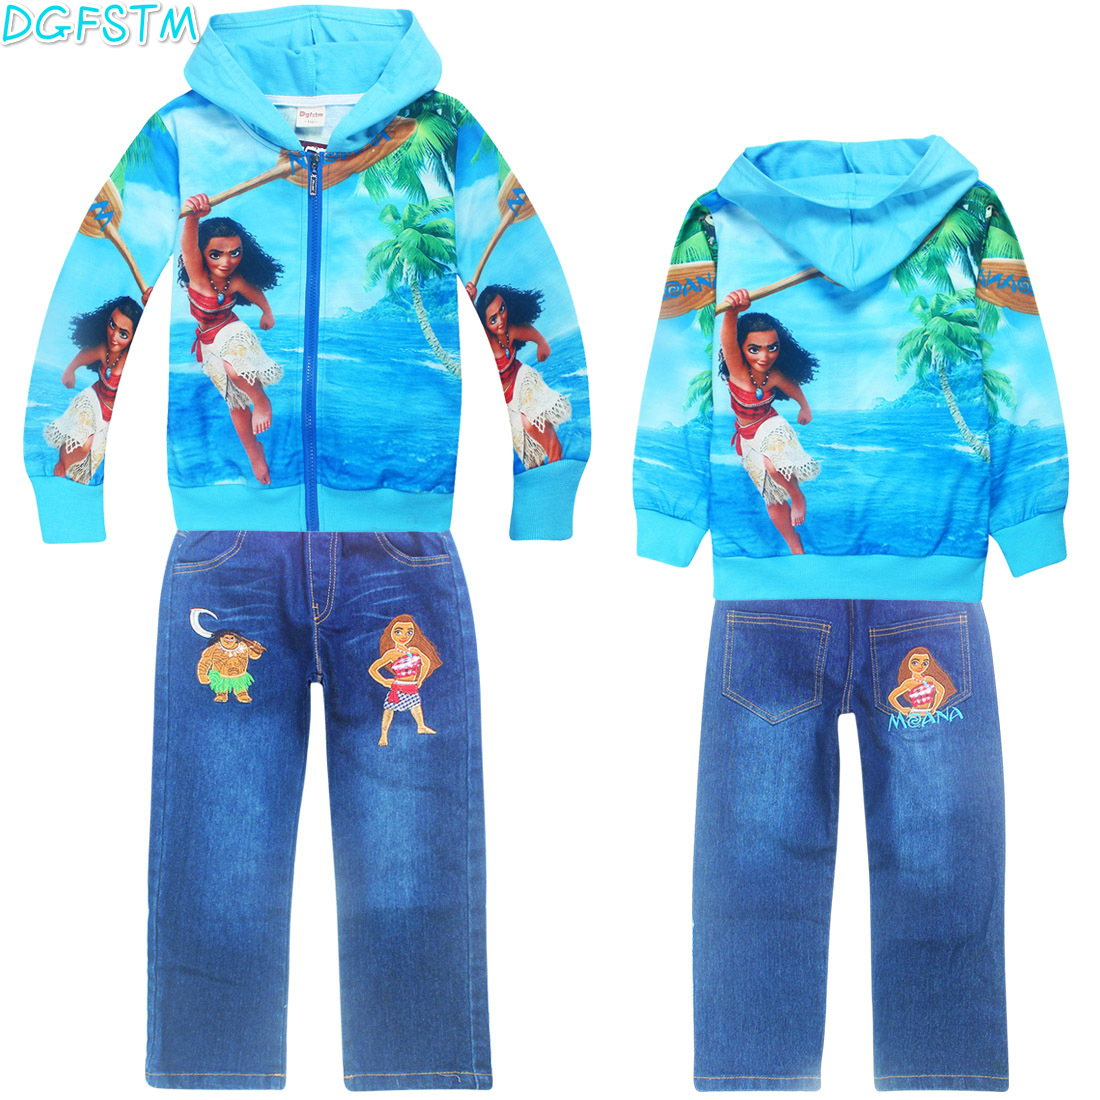 2017 Moana autumn children coat suit jacket sweater wear long sleeved girls child deguisement Long sleeves T-shirt+Jeans sets